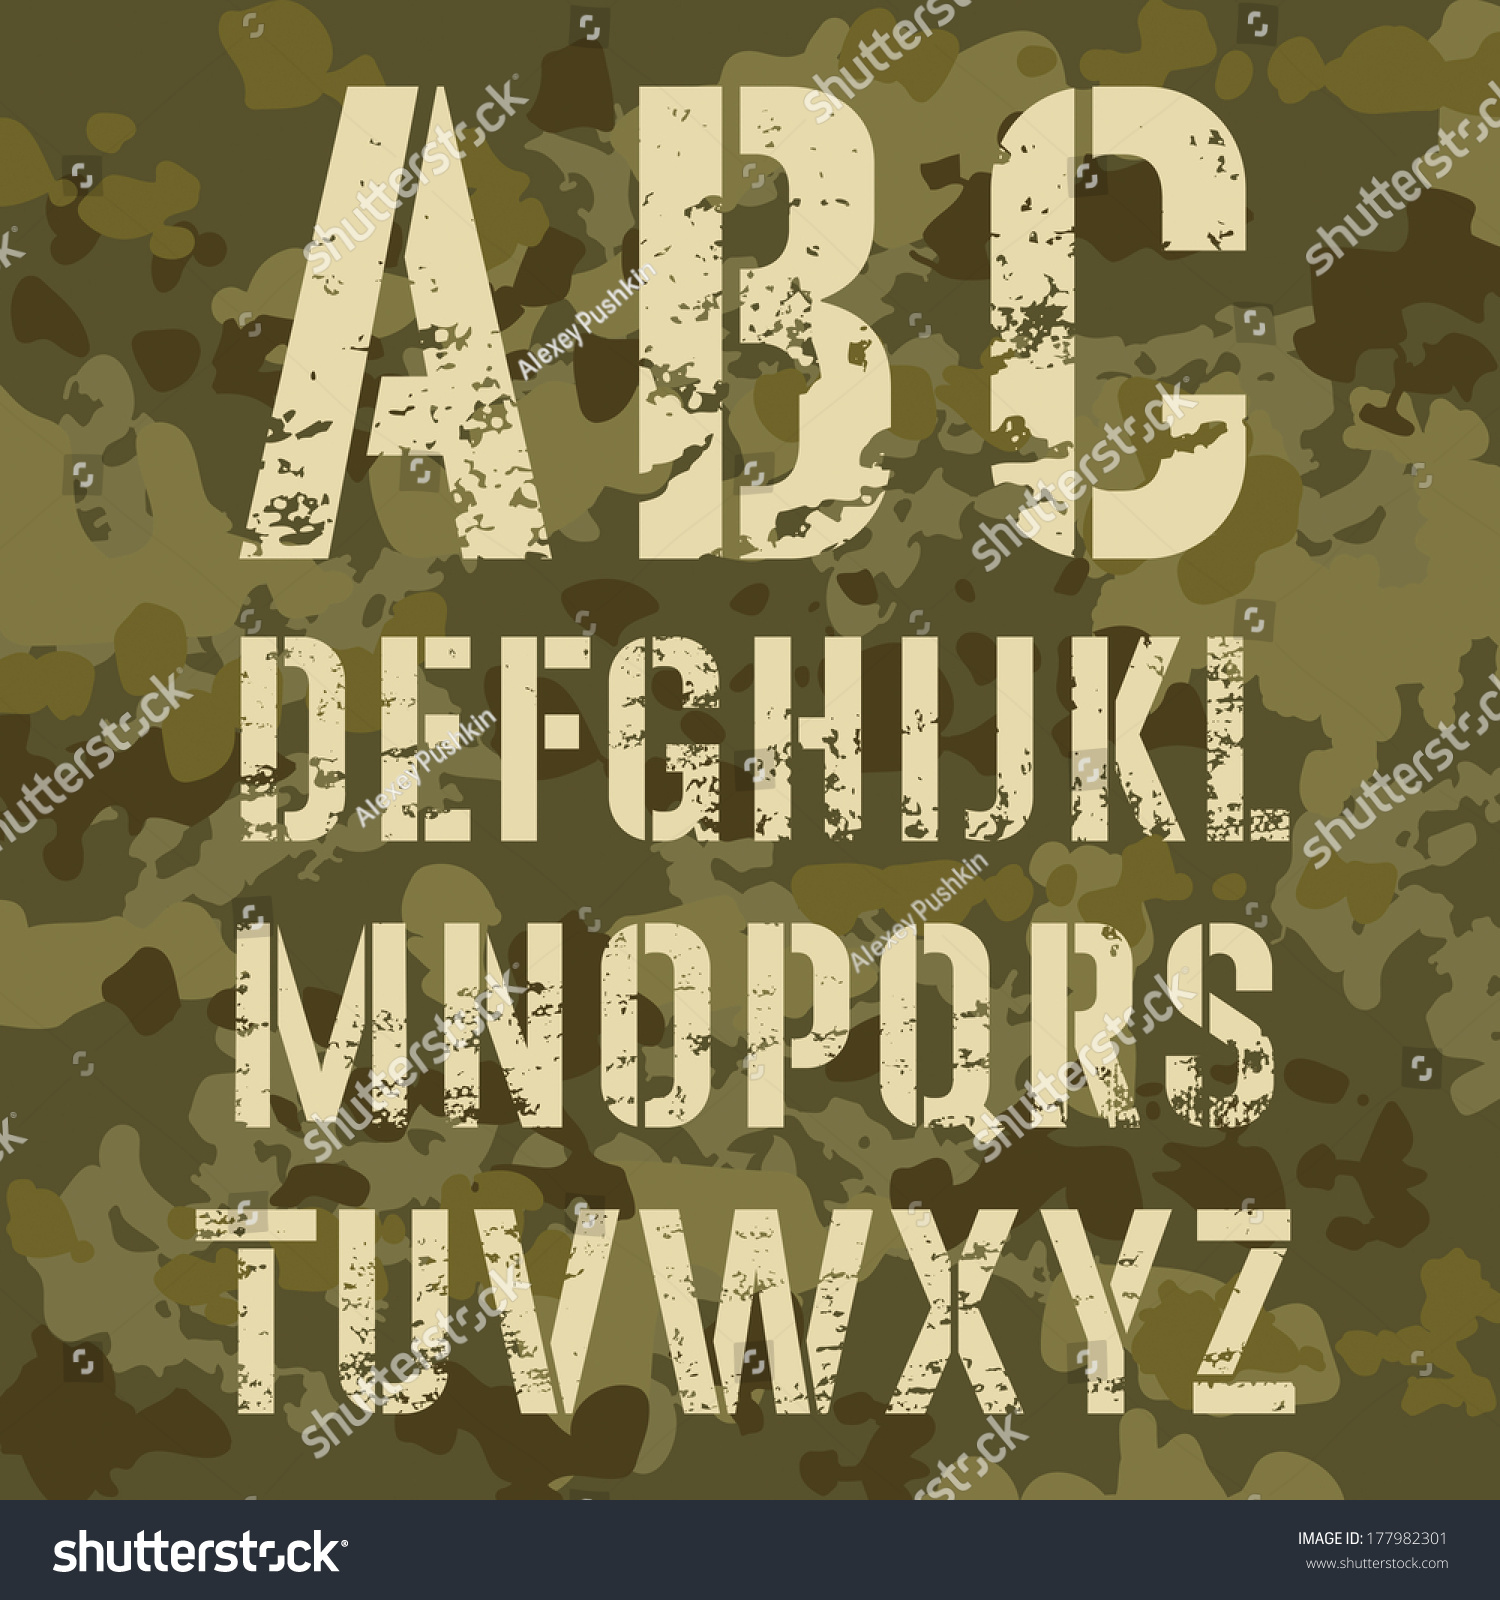 Military stencil alphabet on camouflage background stock vector military stencil alphabet on a camouflage background vector illustration amipublicfo Choice Image